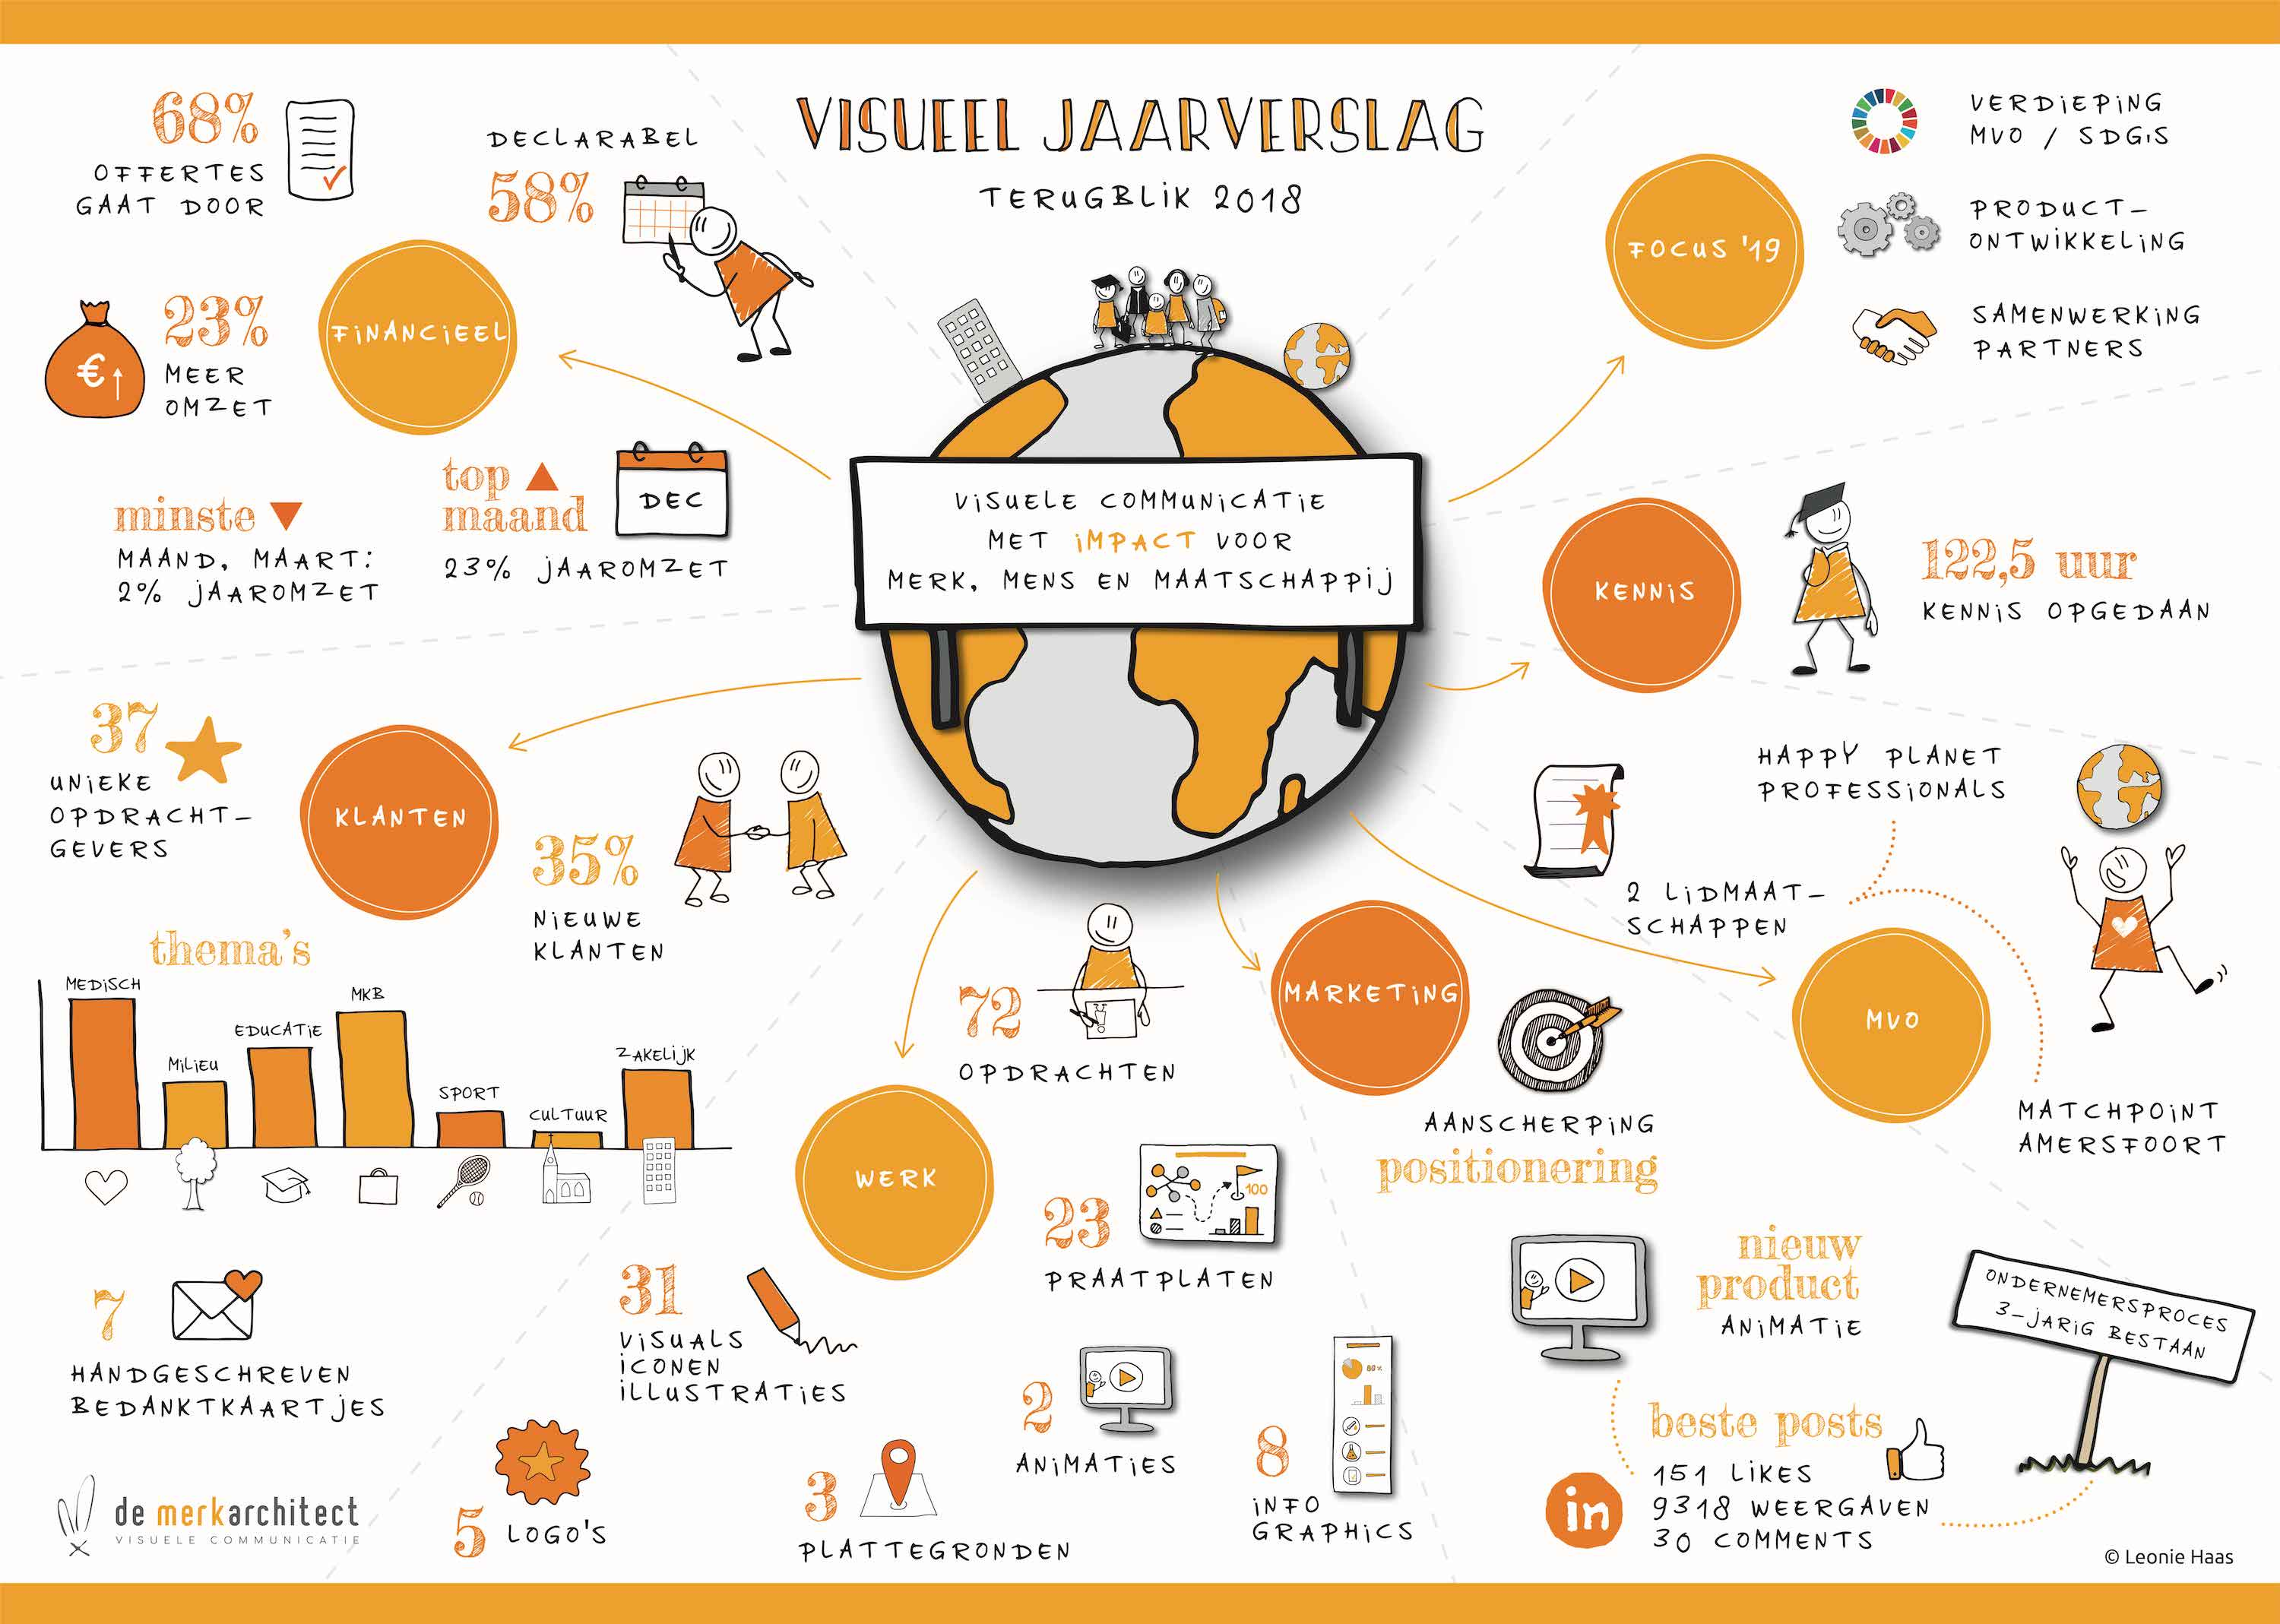 jaarverslag, visueel jaarverslag, strategie, visualisatie, zakelijk tekenen, Leonie Haas, visueel vertaler, illustratie, visual, visualize, strategy